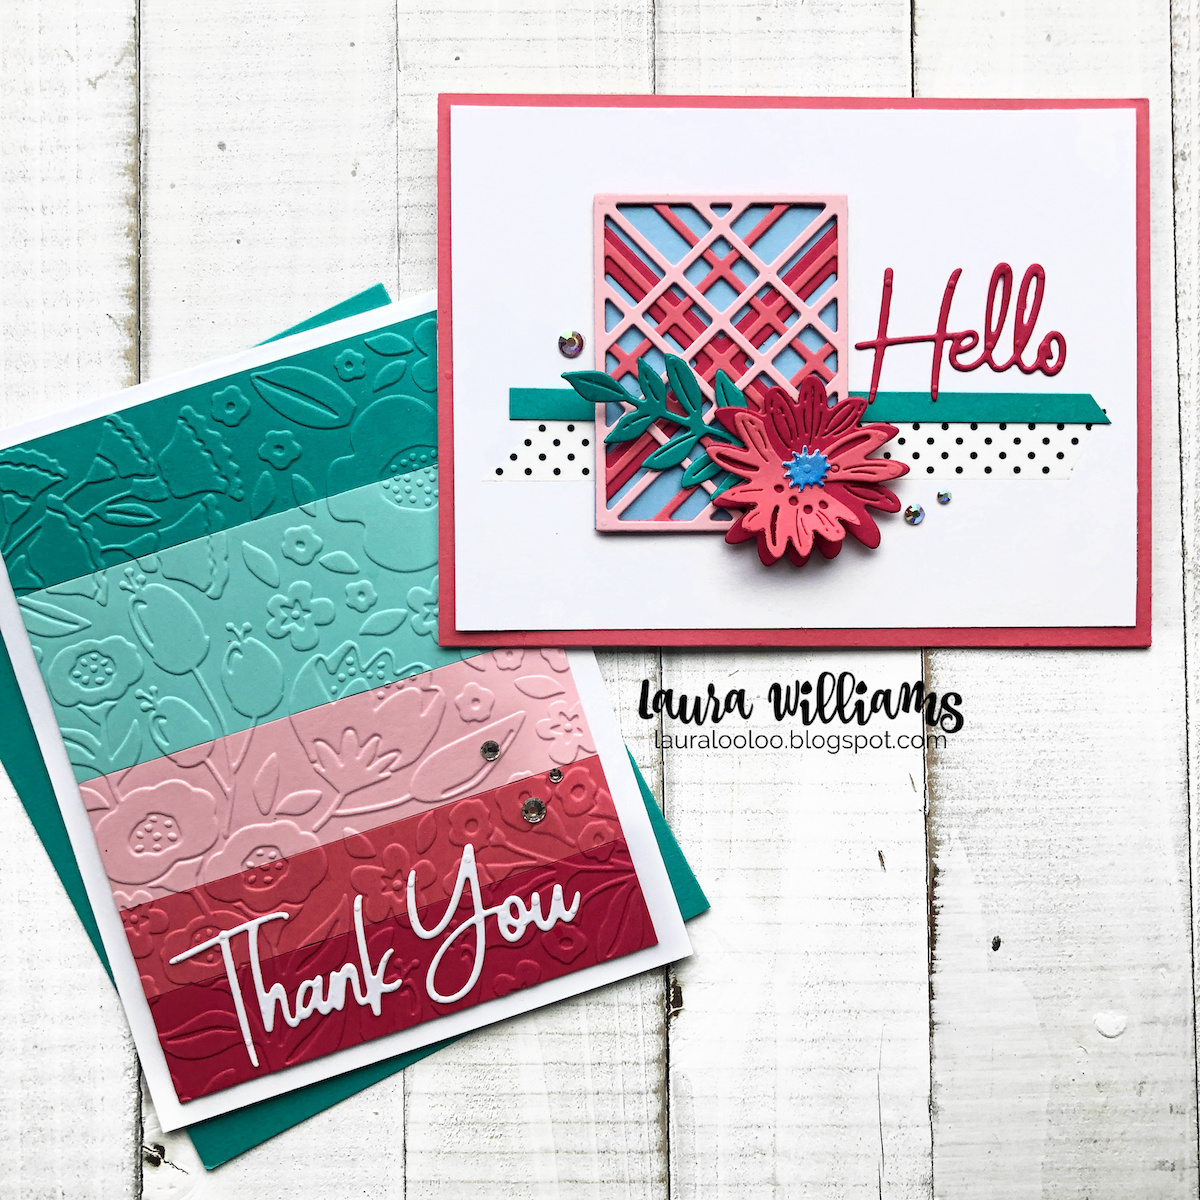 Cardmaking ideas with Spellbinders dies and embossing folders for thank you cards and all occasion cards with plaid, stripes, and florals.